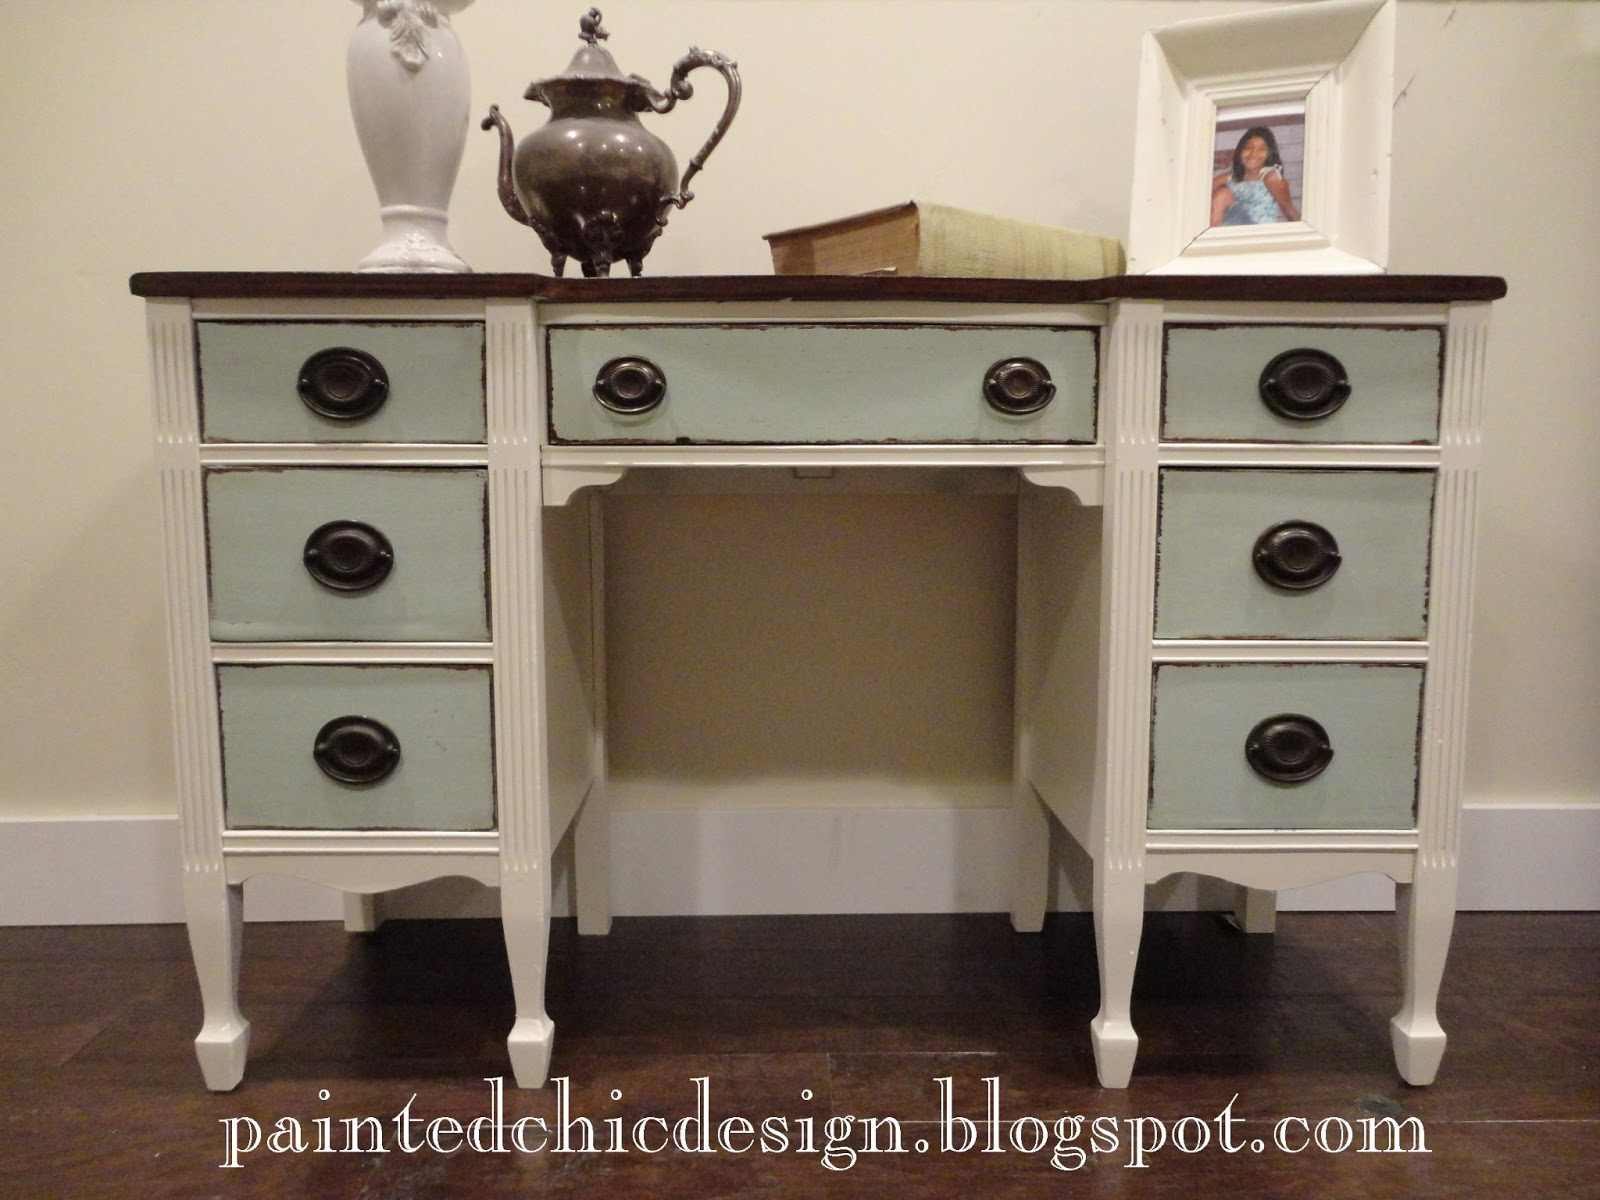 Brand-new The Painted Chic Design: SOLD Antique Two Tone Desk YY28